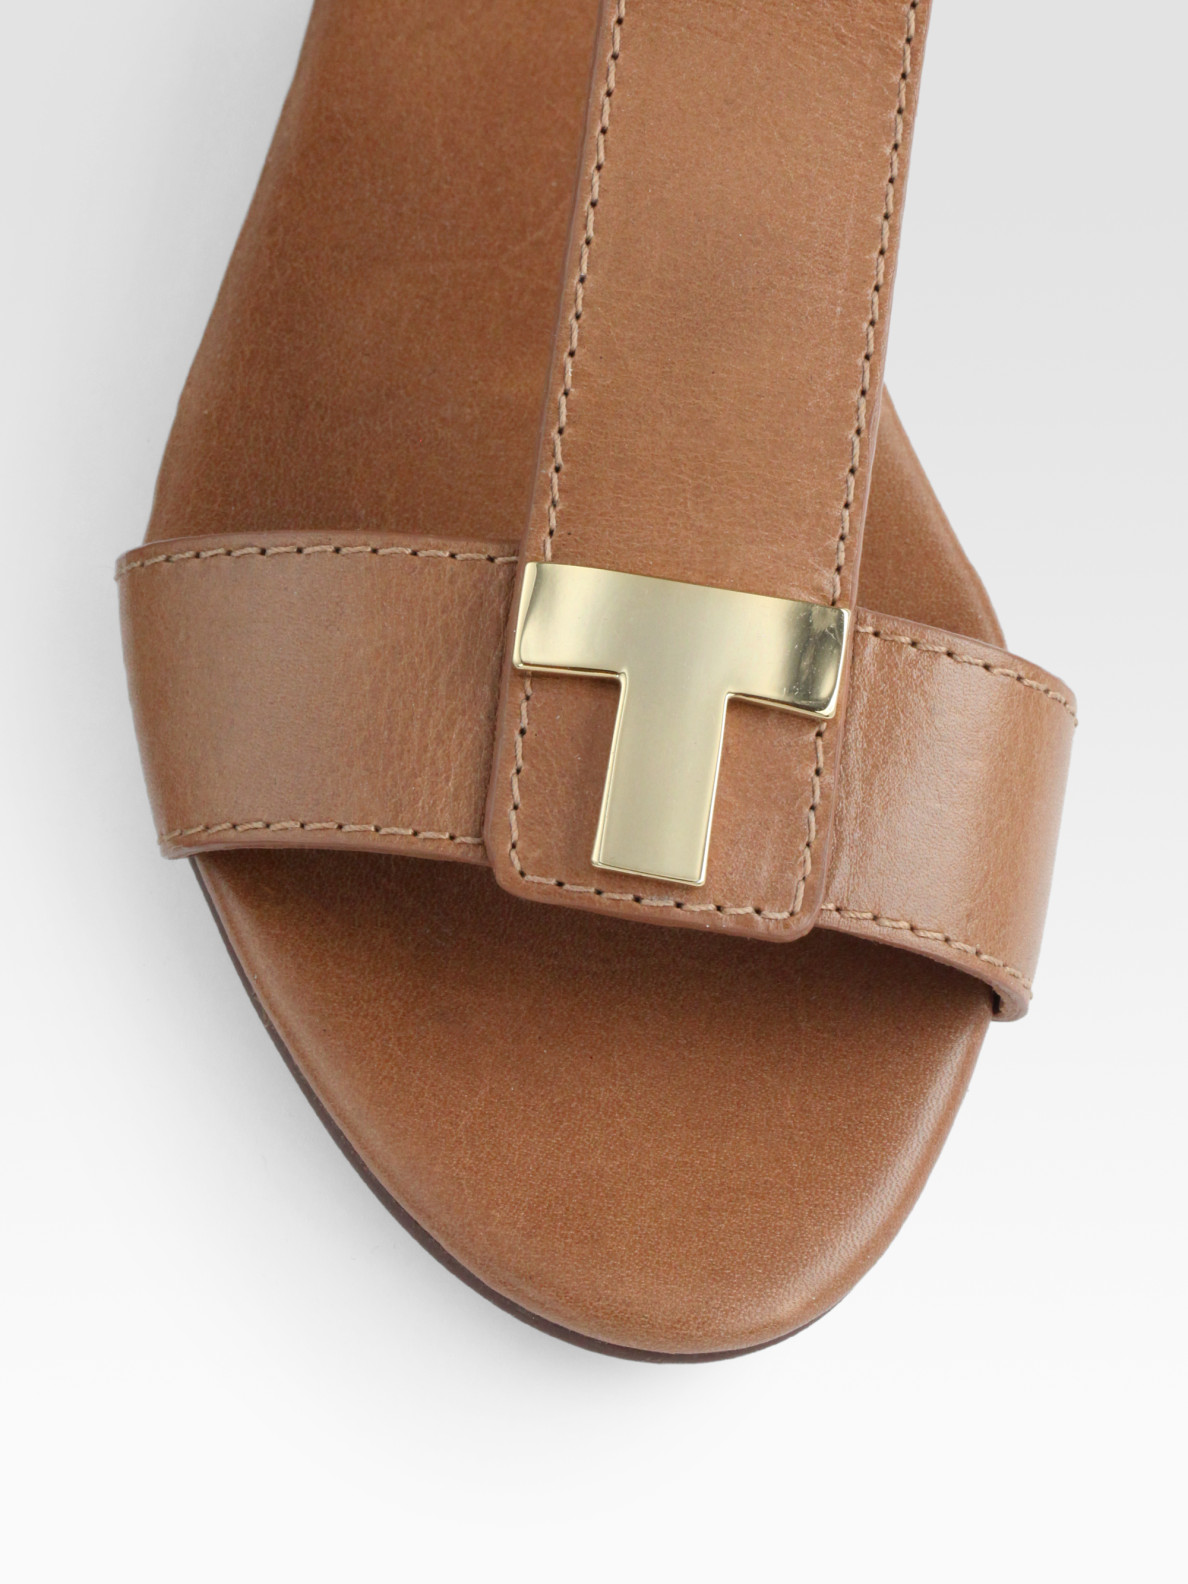 441590abef61 Lyst - Tory Burch Casey Leather T-strap Zip Sandals in Brown